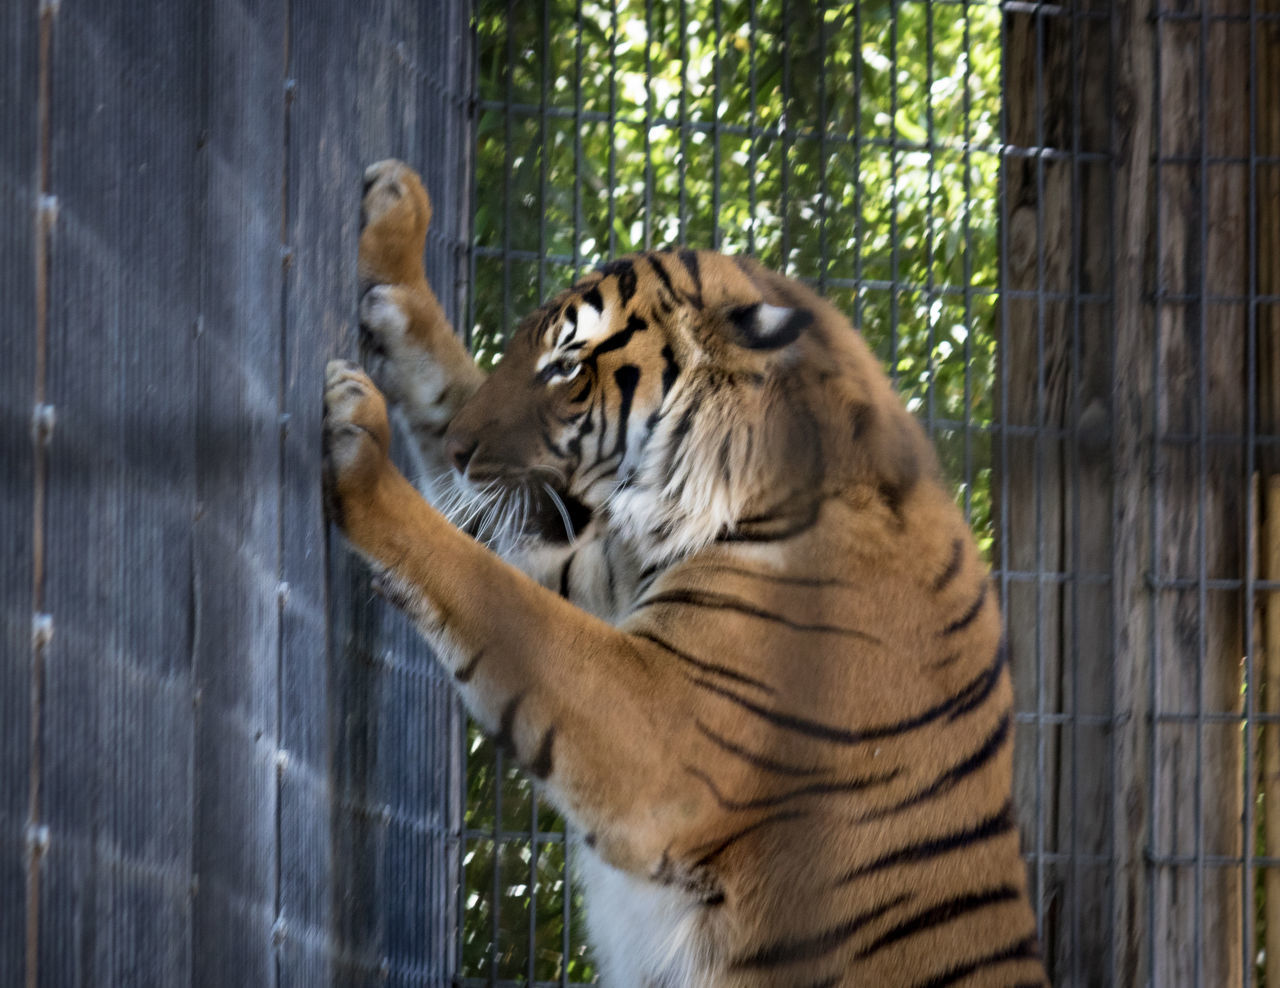 one animal, animal themes, tiger, animals in the wild, animal wildlife, day, mammal, outdoors, no people, nature, close-up